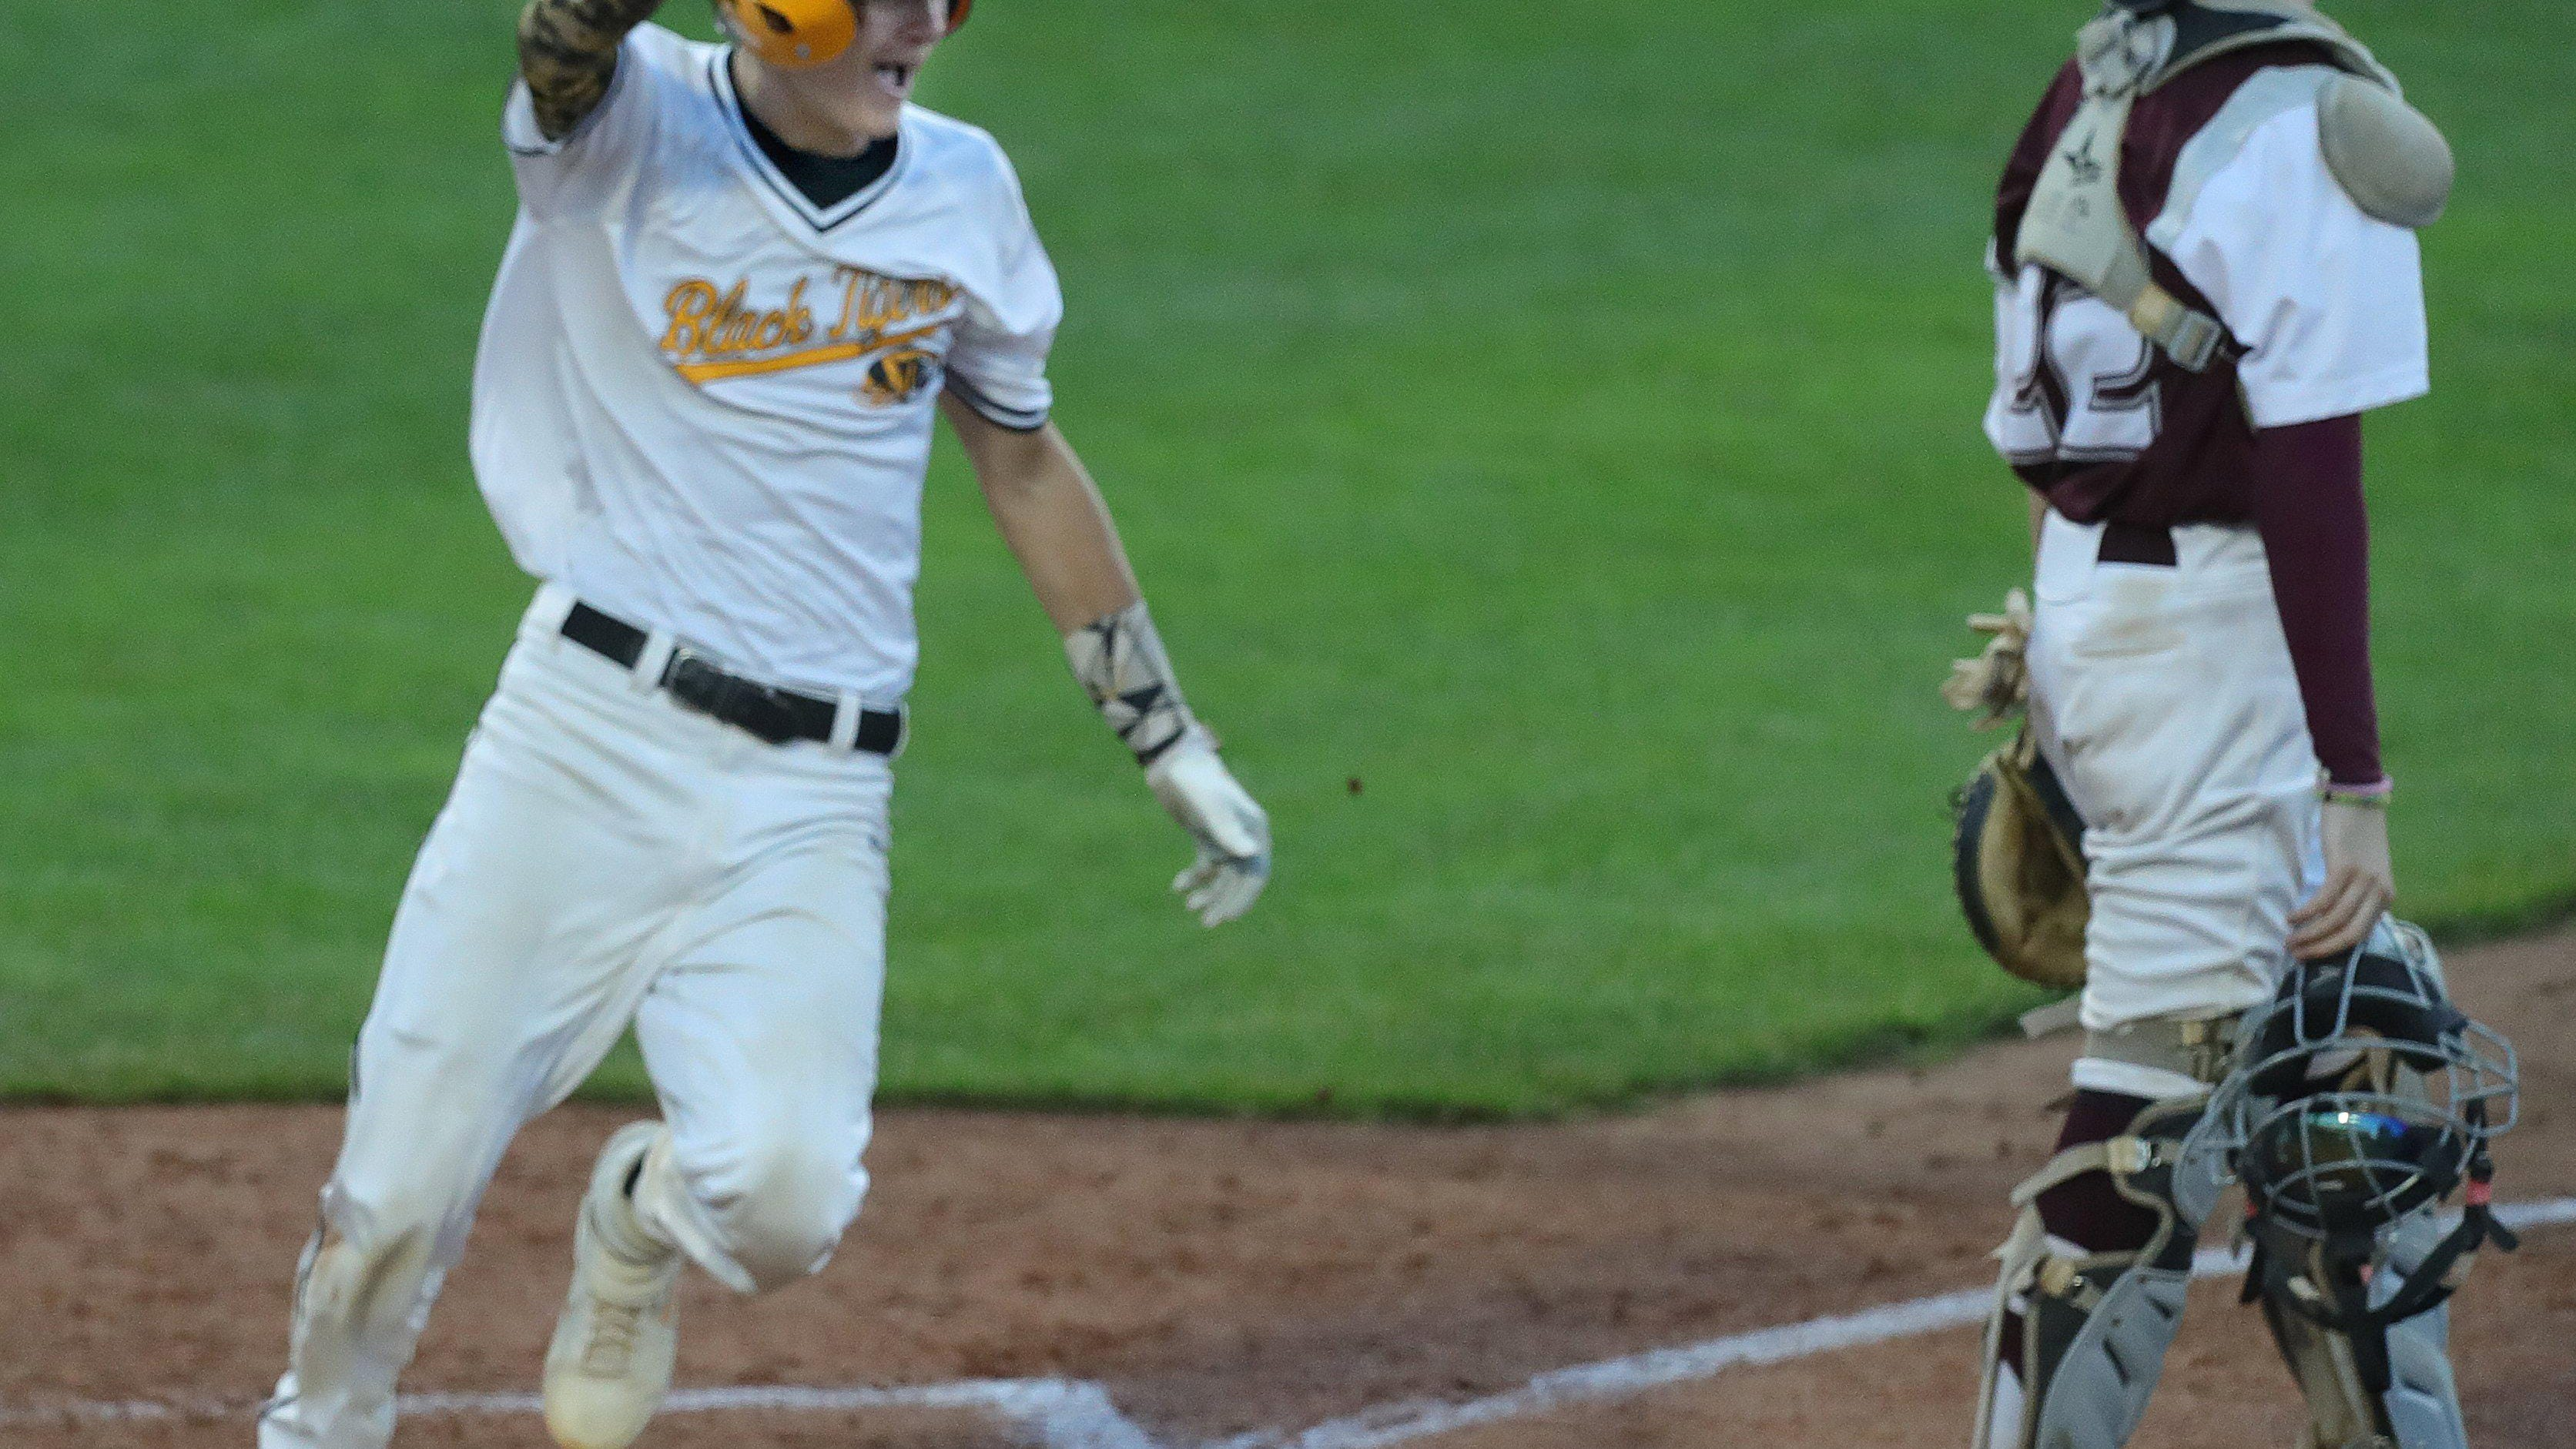 Cuyahoga Falls Baseball Team Gets To Go Out On Top